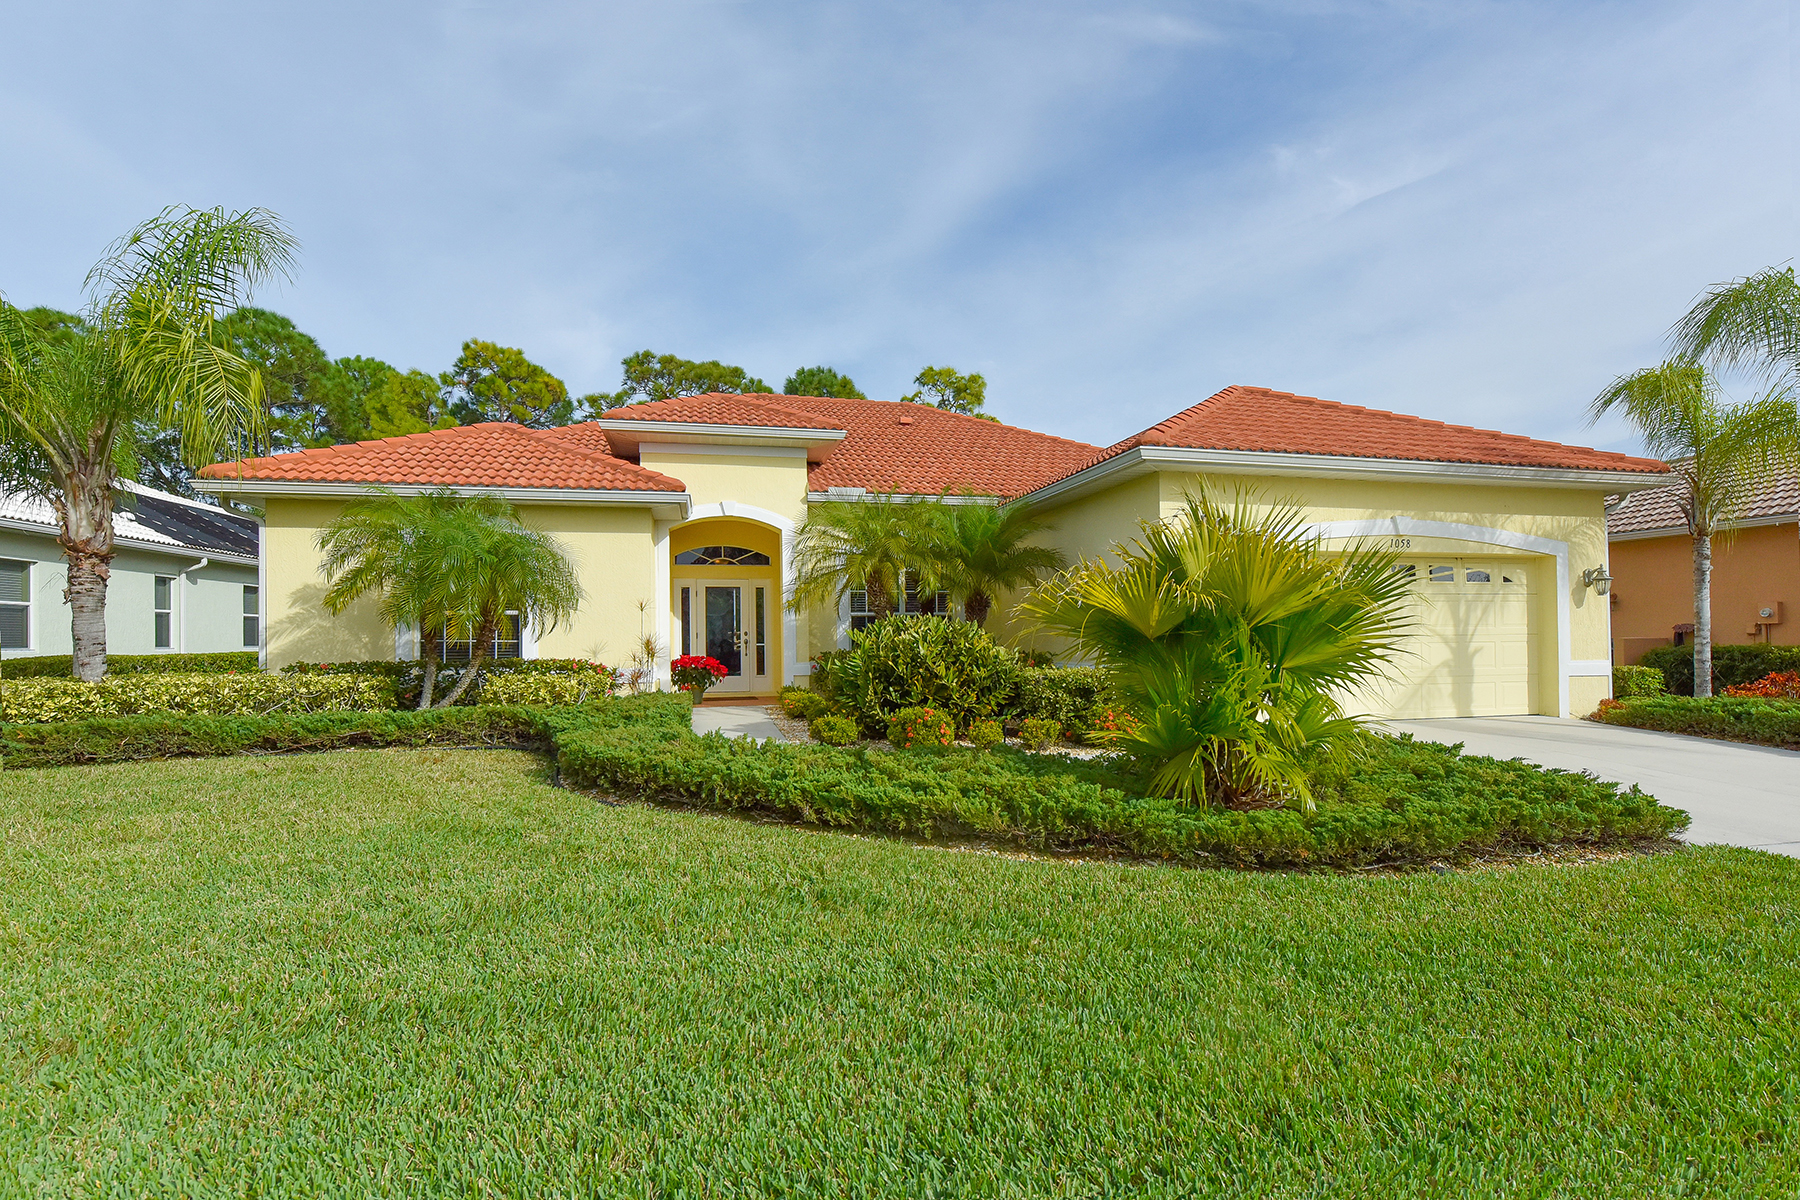 Single Family Home for Sale at PELICAN POINTE 1058 Tuscany Blvd Venice, Florida 34292 United States